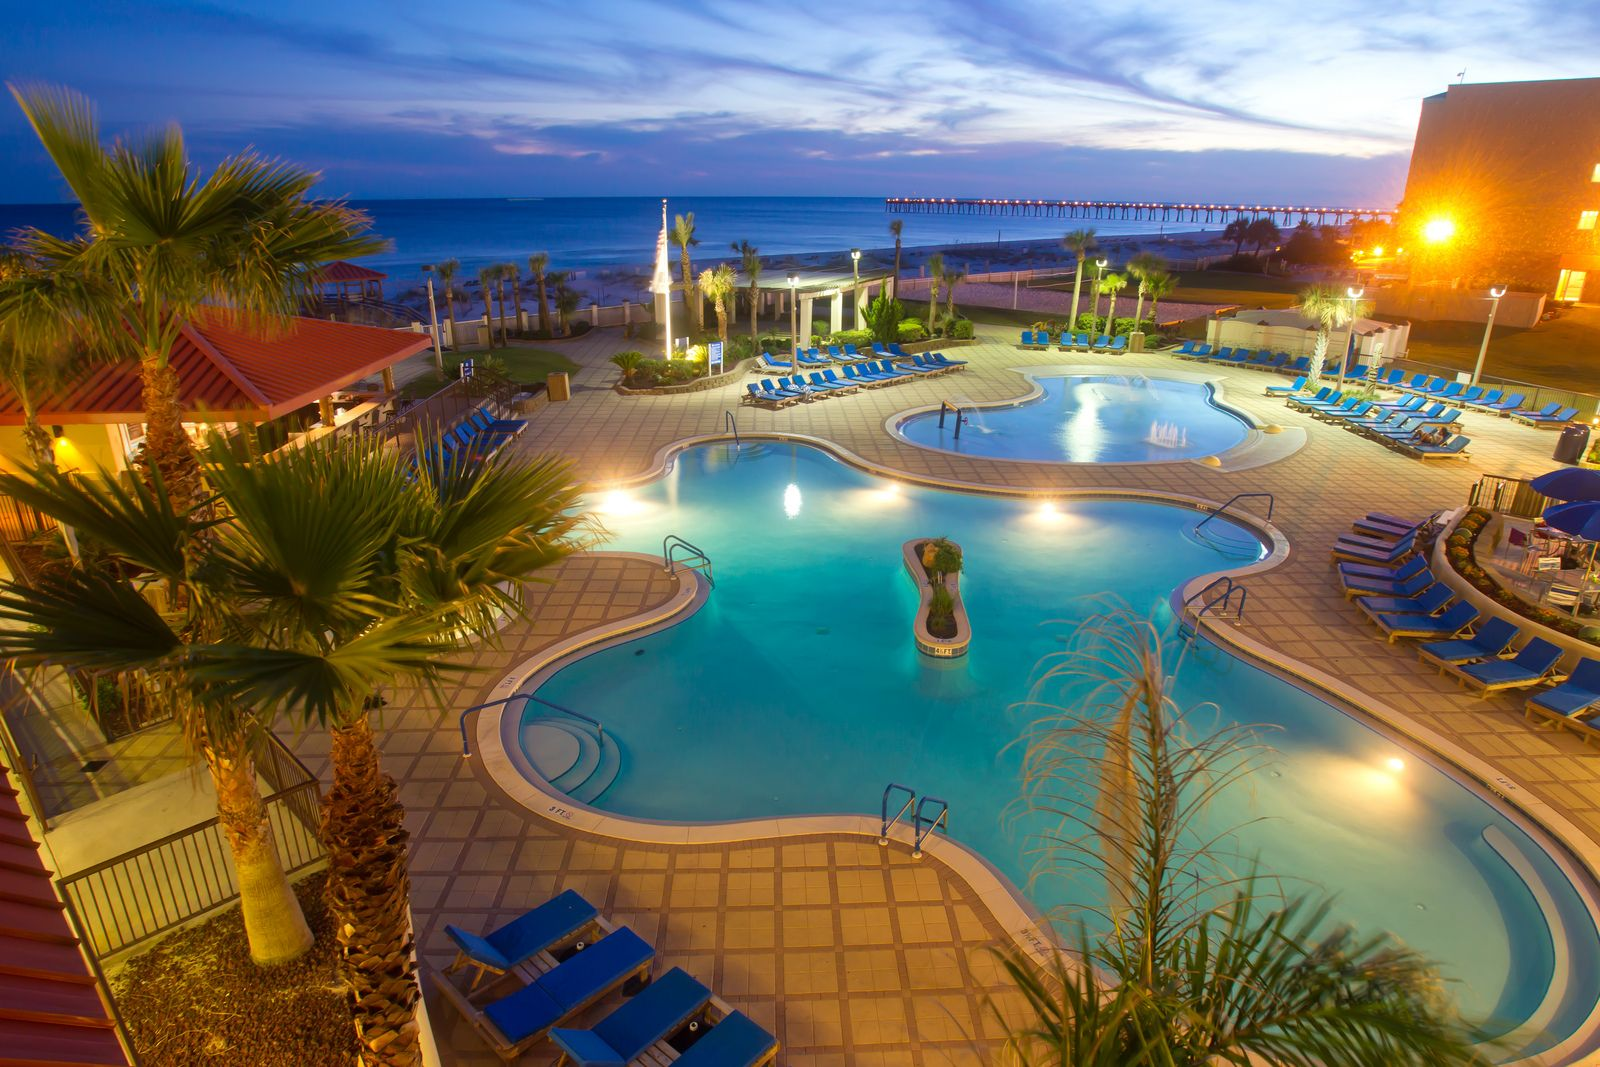 Feel Like You Have Truly Arrived At The Hilton Pensacola Beach Fl Hotel Spectacular Beachfront Views Pools Hot Tub Fine Dining And Fully Equipped Gym